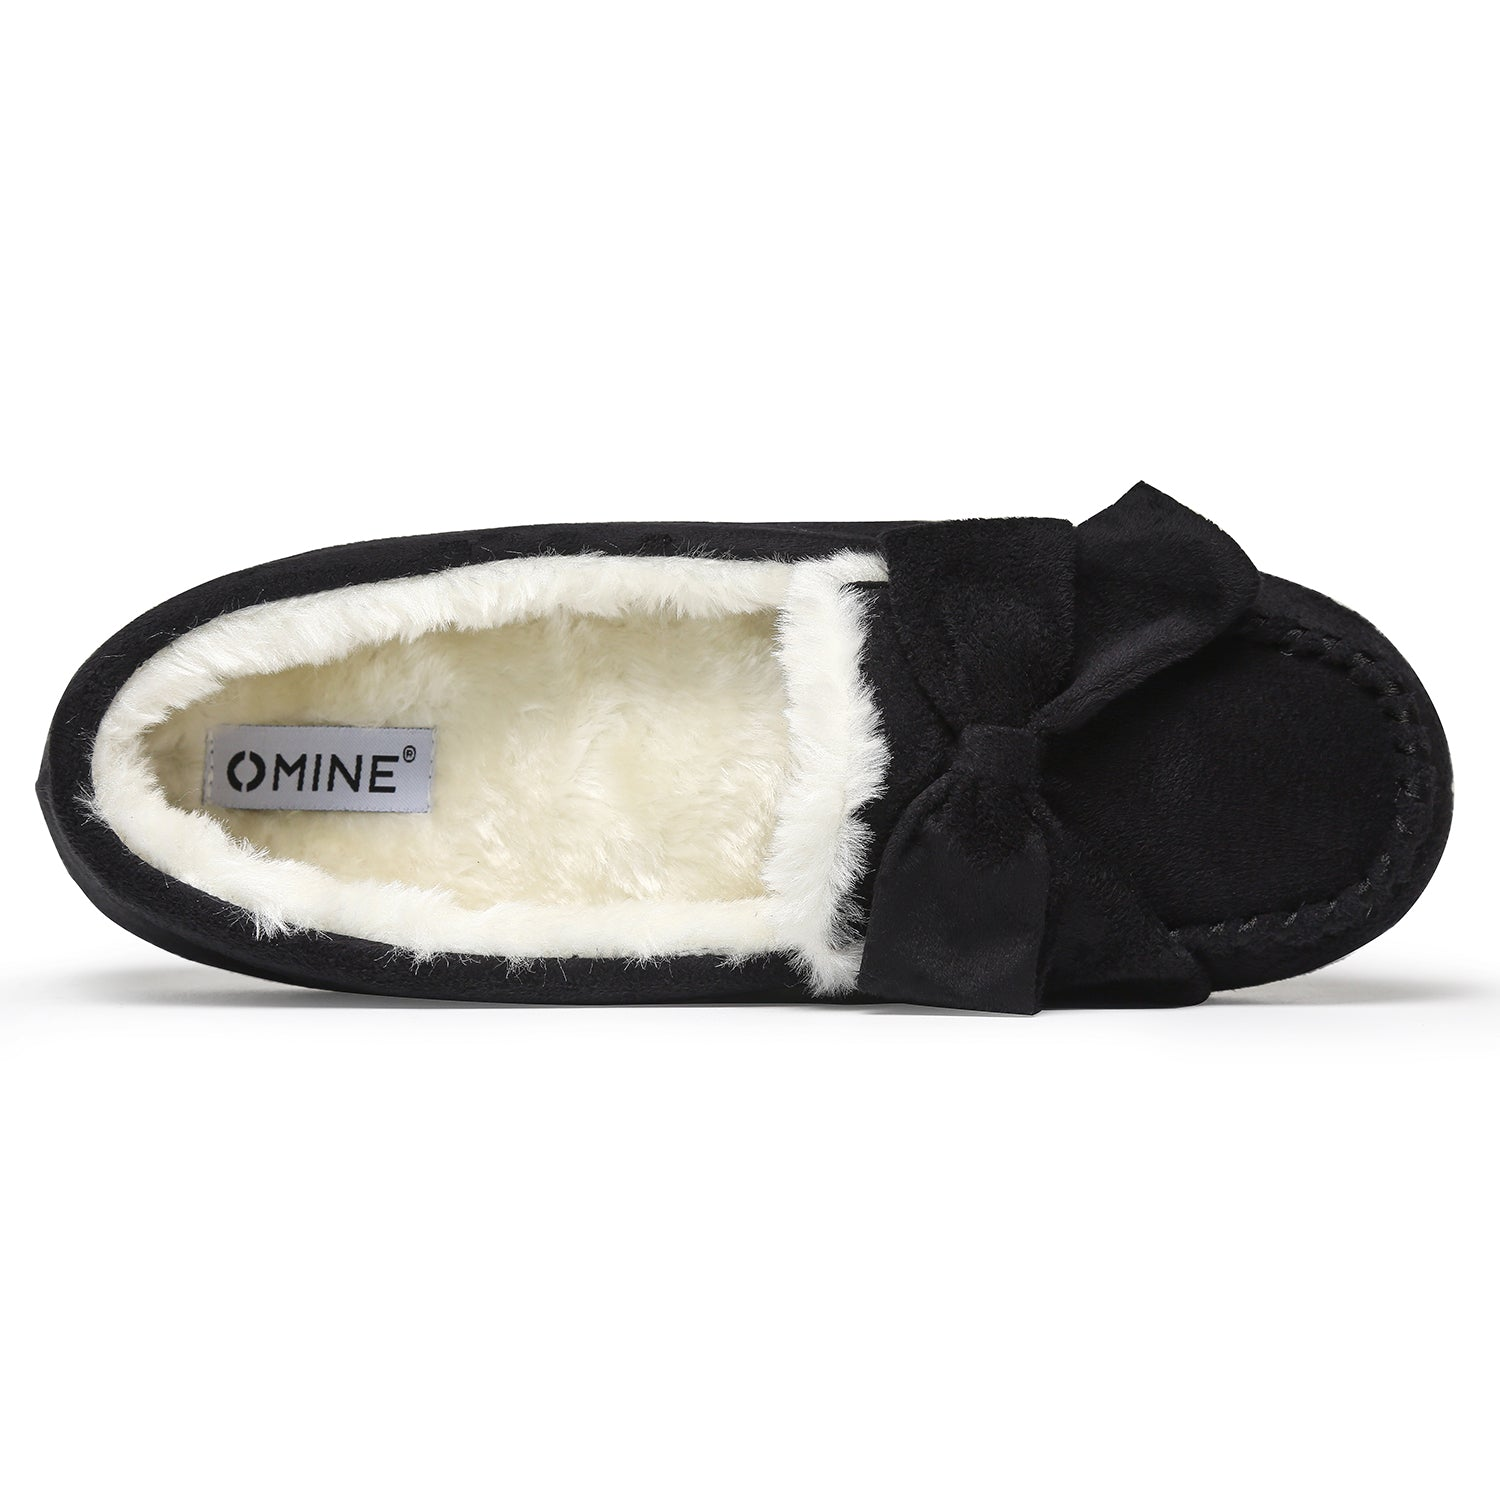 Women's Faux Fur Slipper Sheepskin Softsole Flat Moccasin Shoes